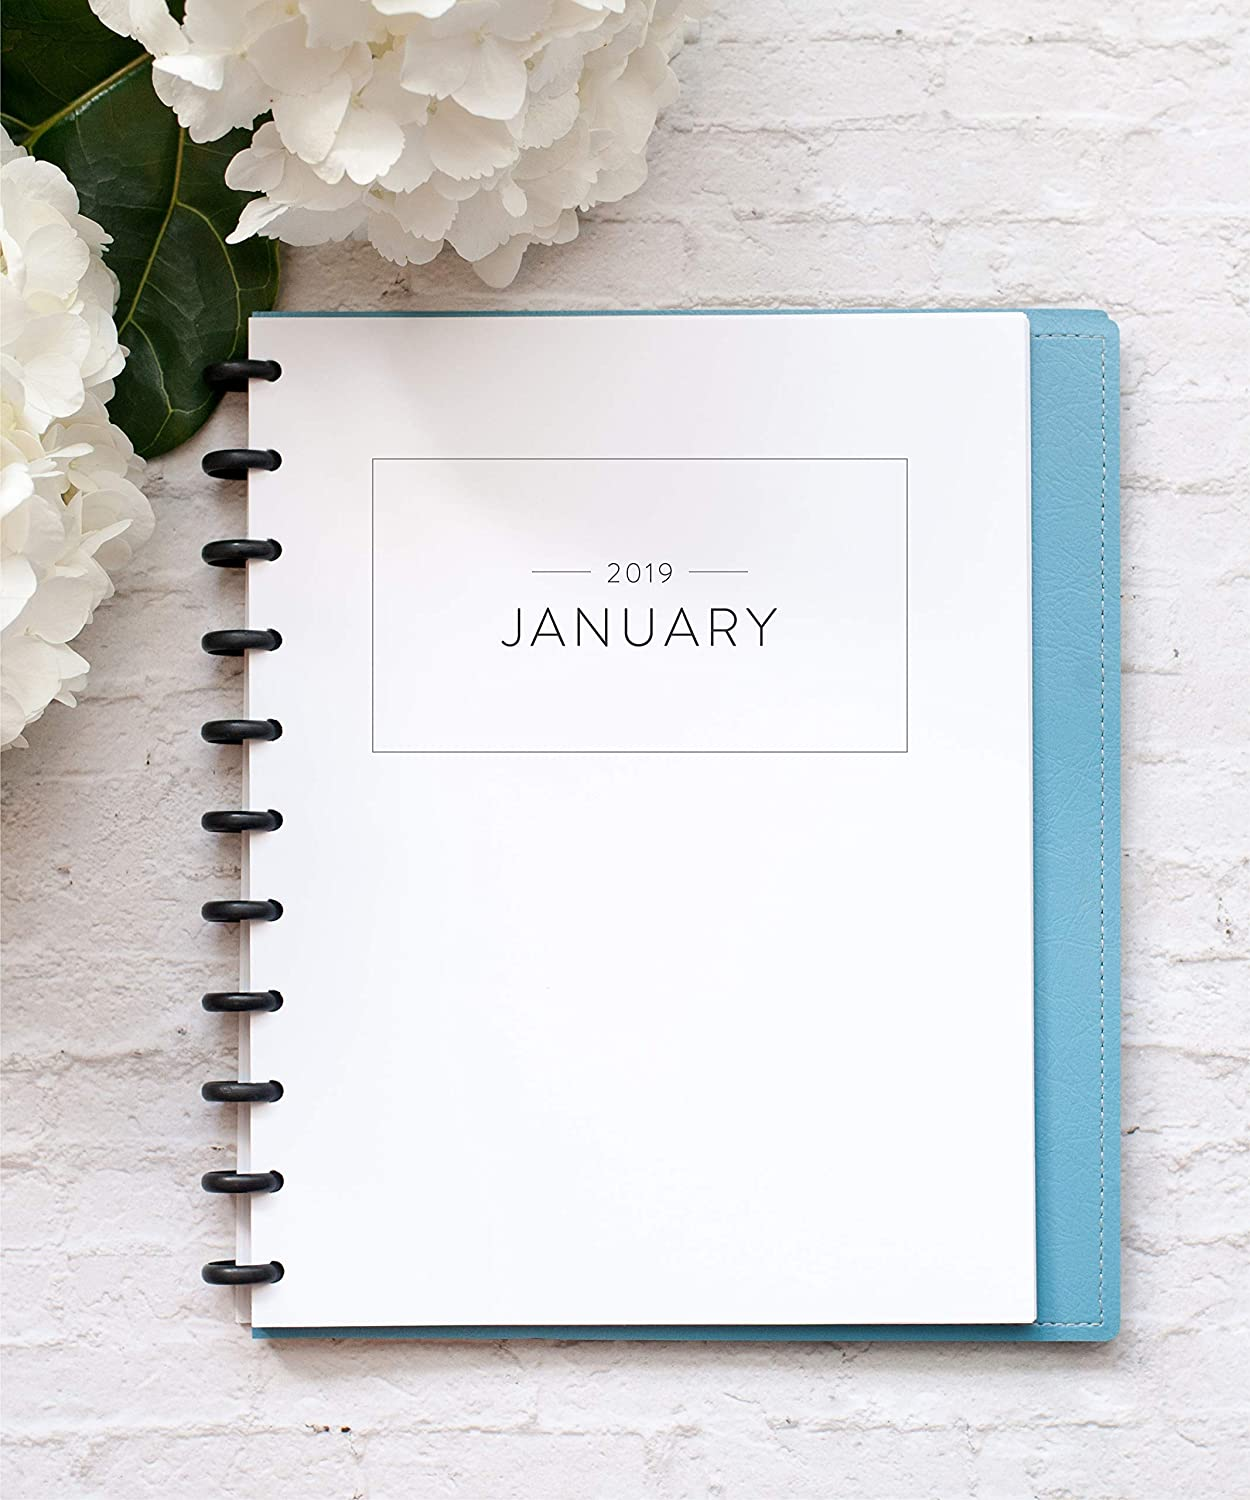 2019 Monthly Calendar with Dividers for Disc-Bound Planners, Fits 11-Disc Levenger Circa, Arc by Staples, TUL by Office Depot, Letter Size 8.5